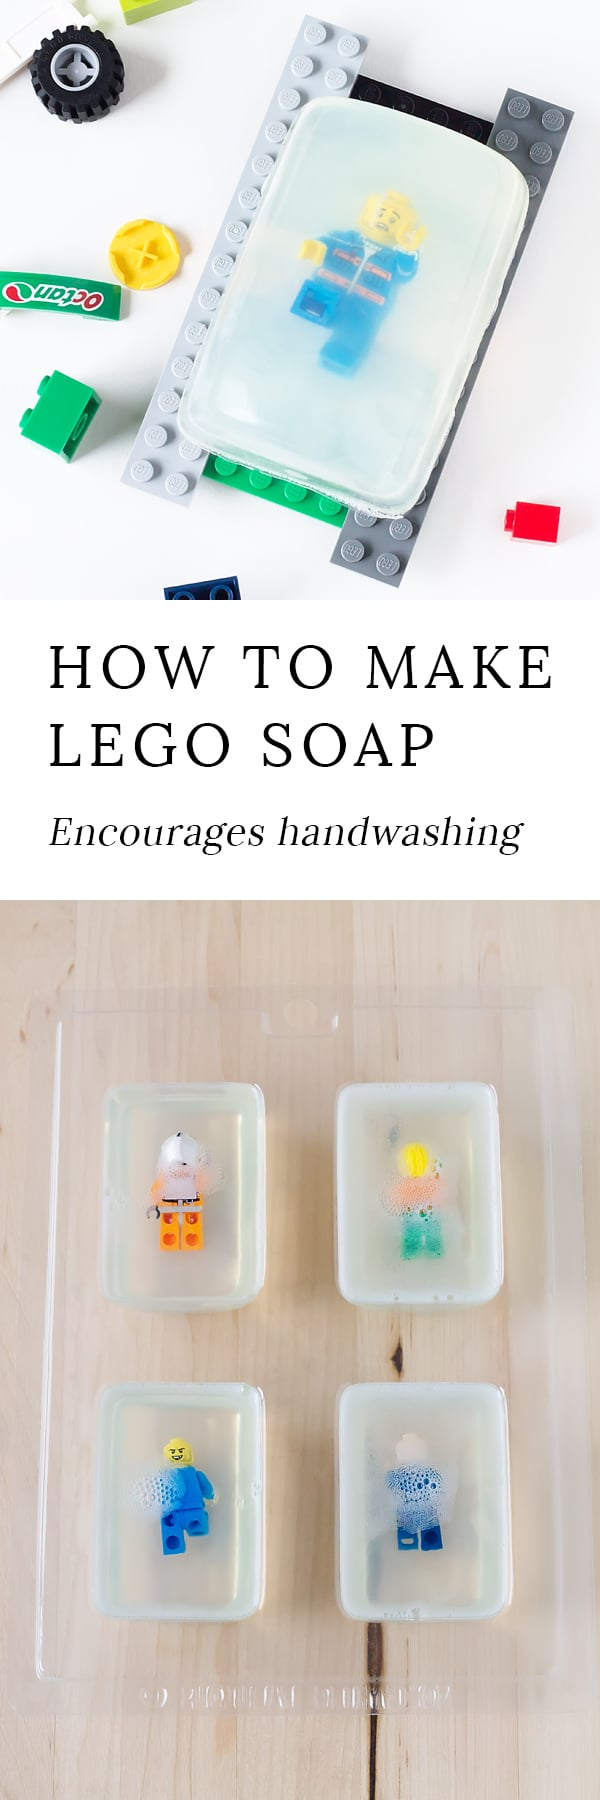 DIY LEGO Rescue Soap, created from clear glycerin melt and pour soap and LEGO Minifigures will get your kids back into healthy handwashing habits.